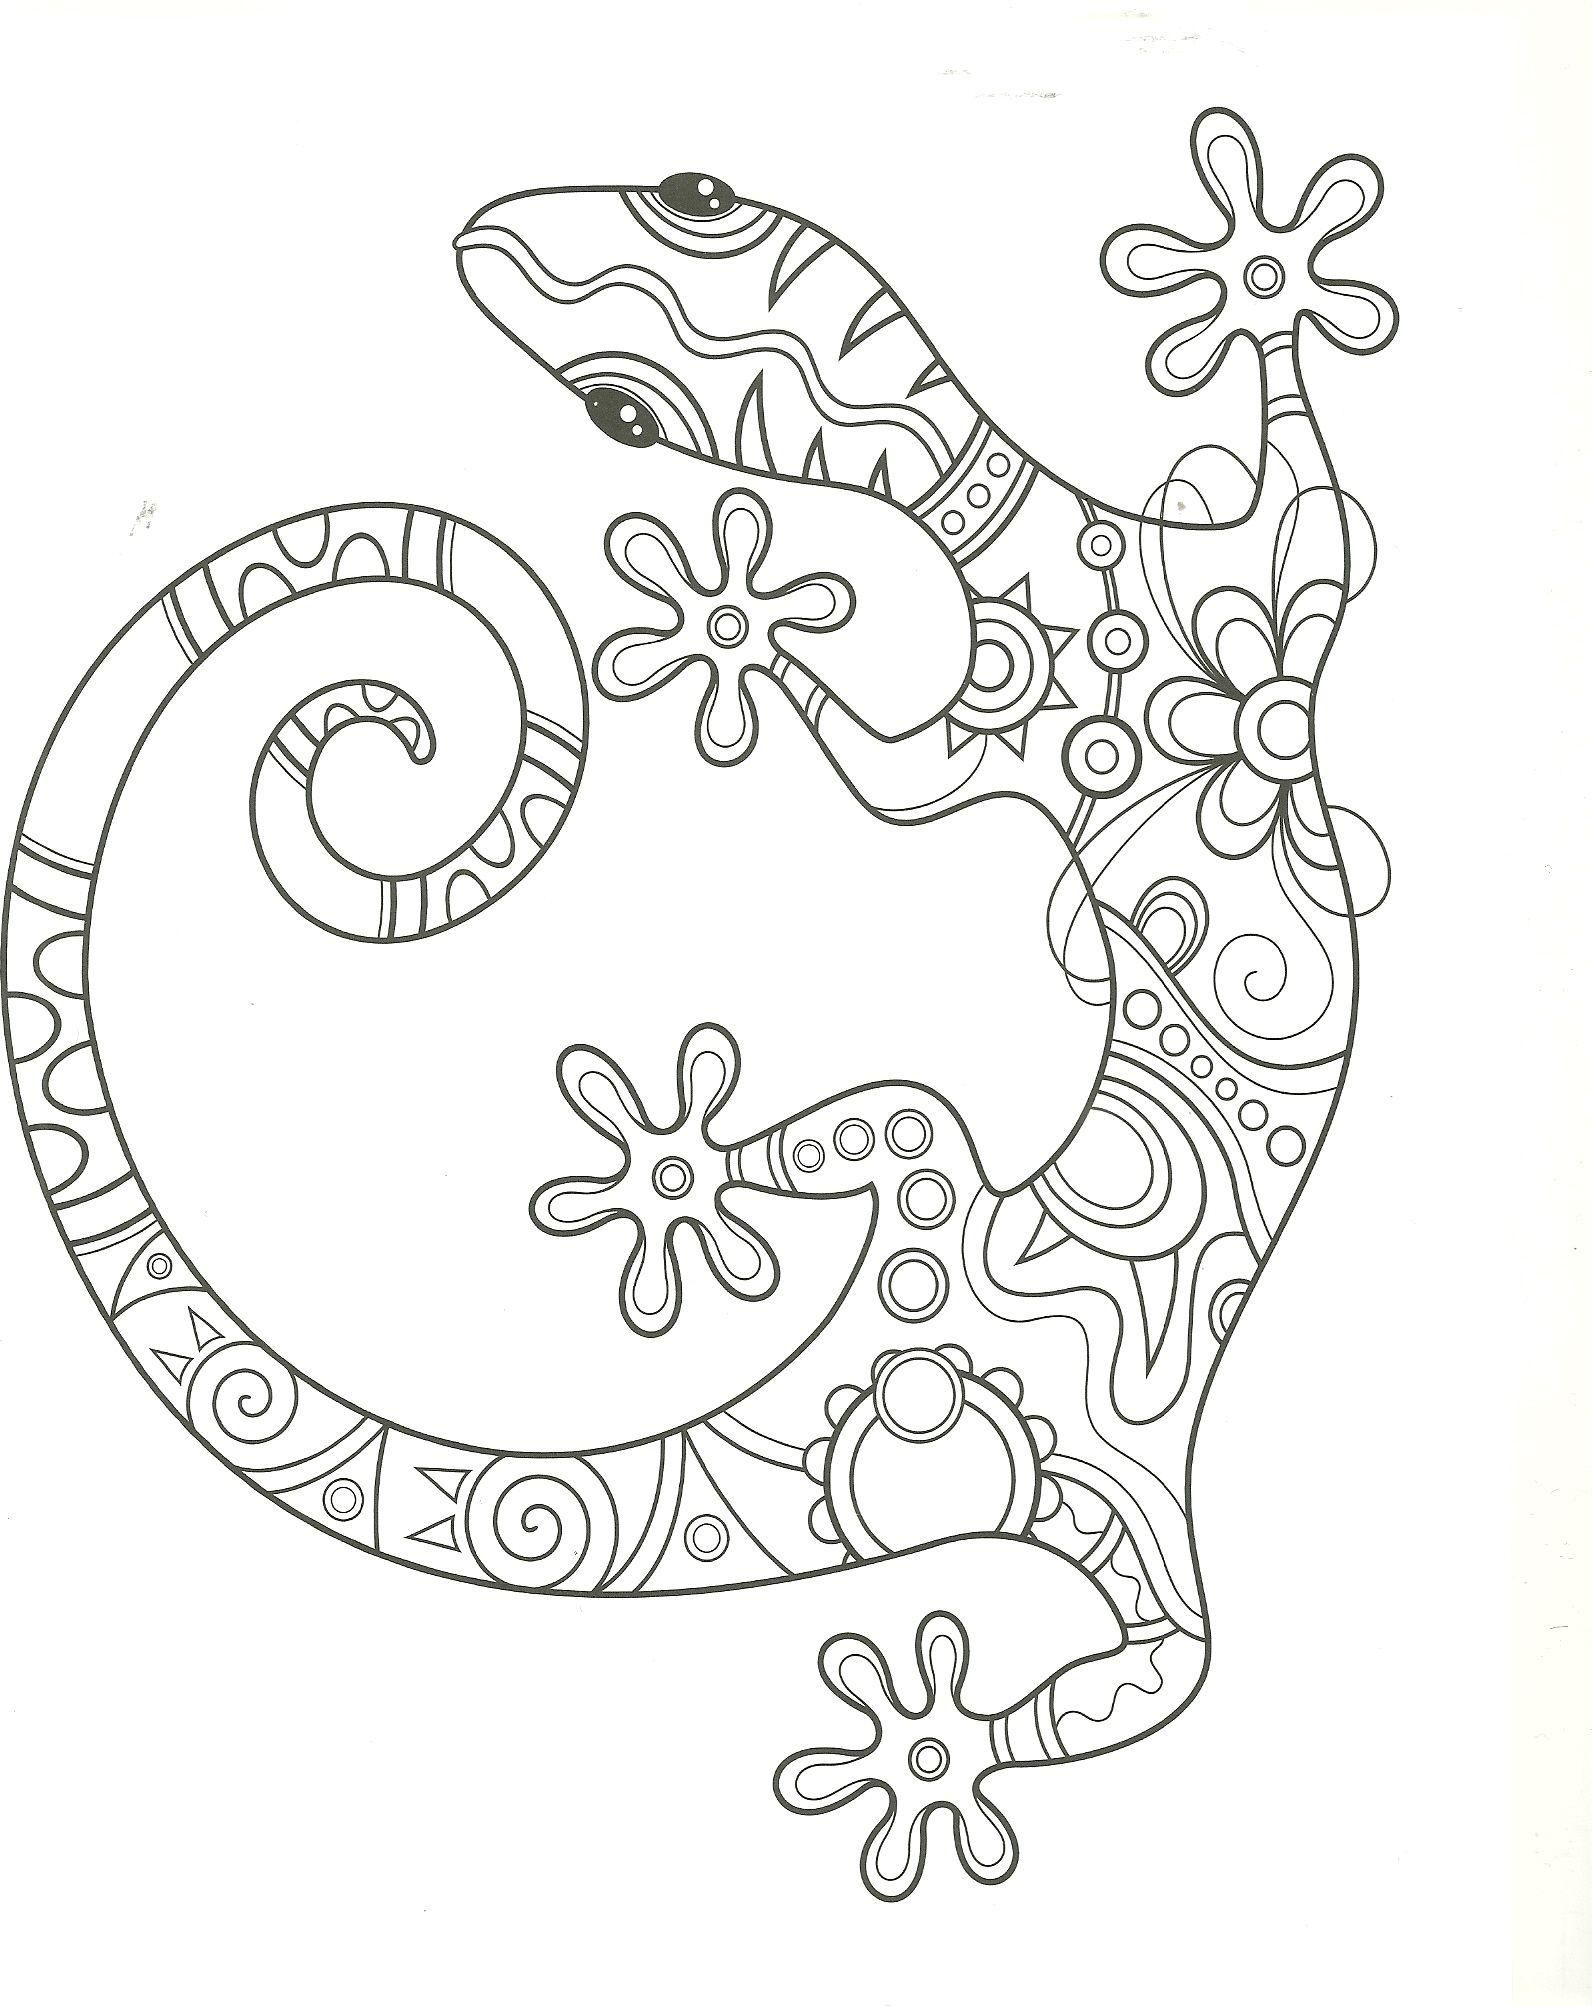 16 Free Printable Colouring Pages Lizards In 2020 Mandala Coloring Pages Mandala Coloring Free Coloring Pages